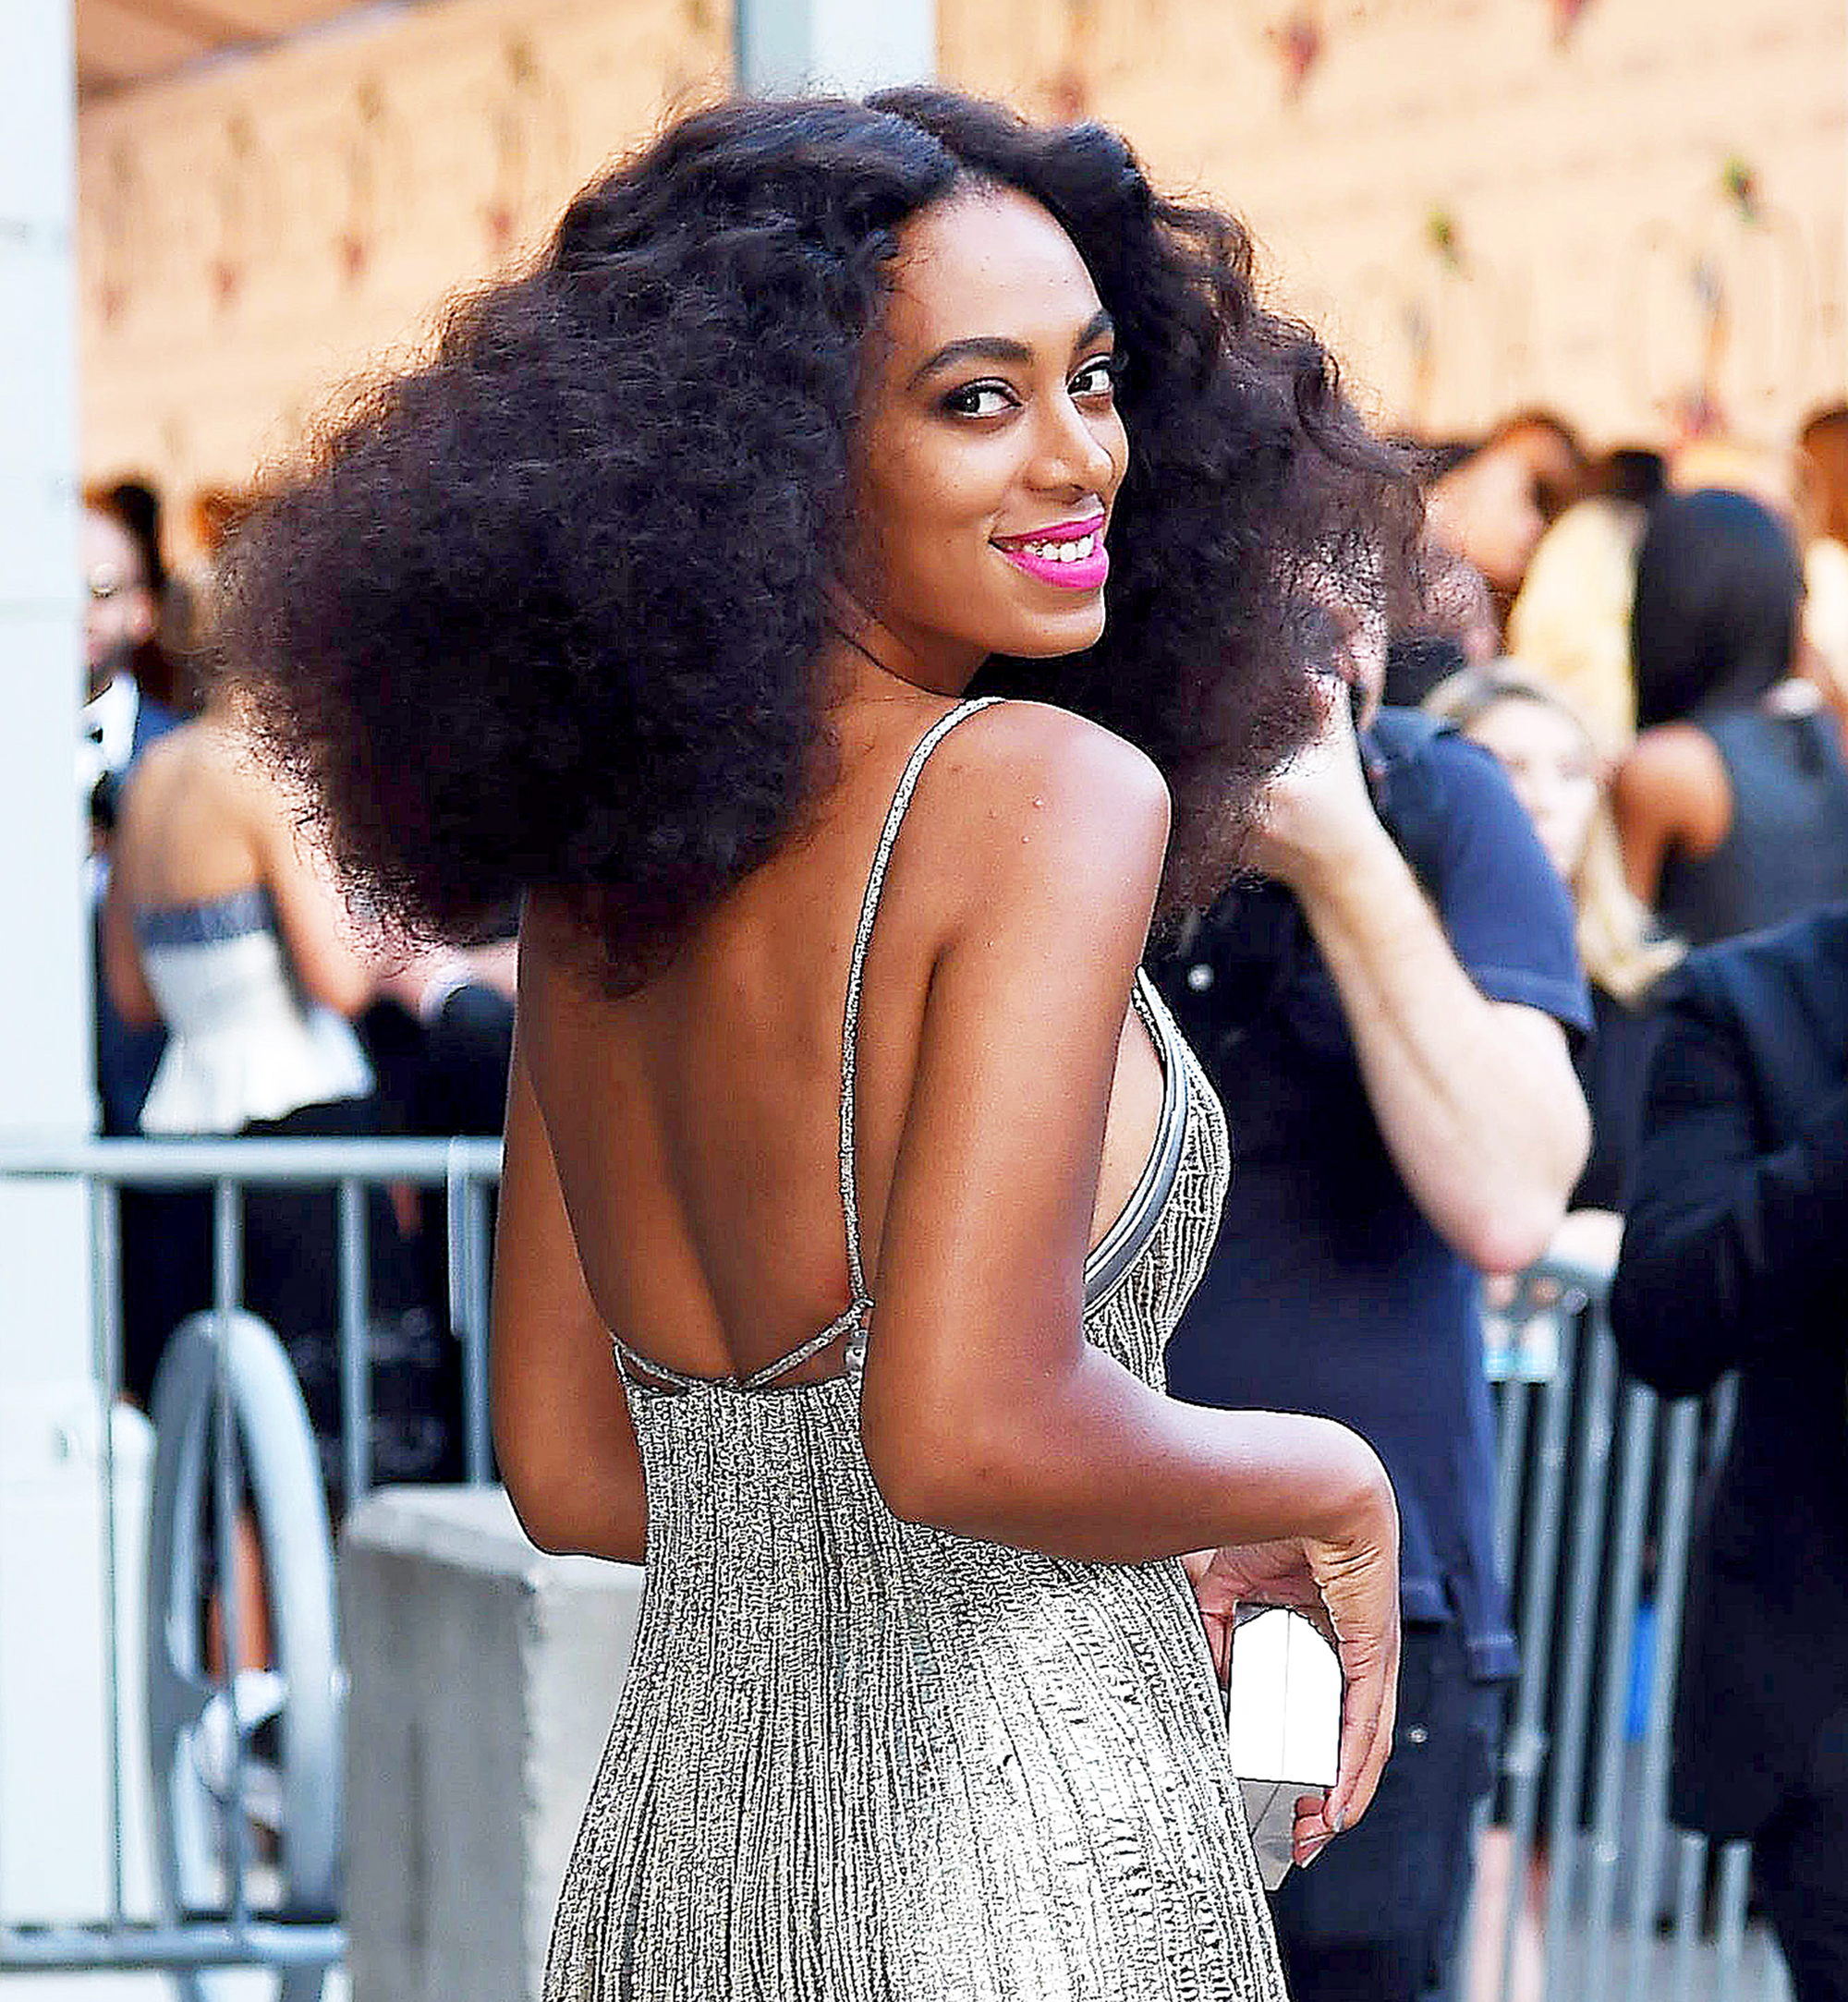 Solange Knowles nudes (98 photo), Ass, Hot, Instagram, braless 2018